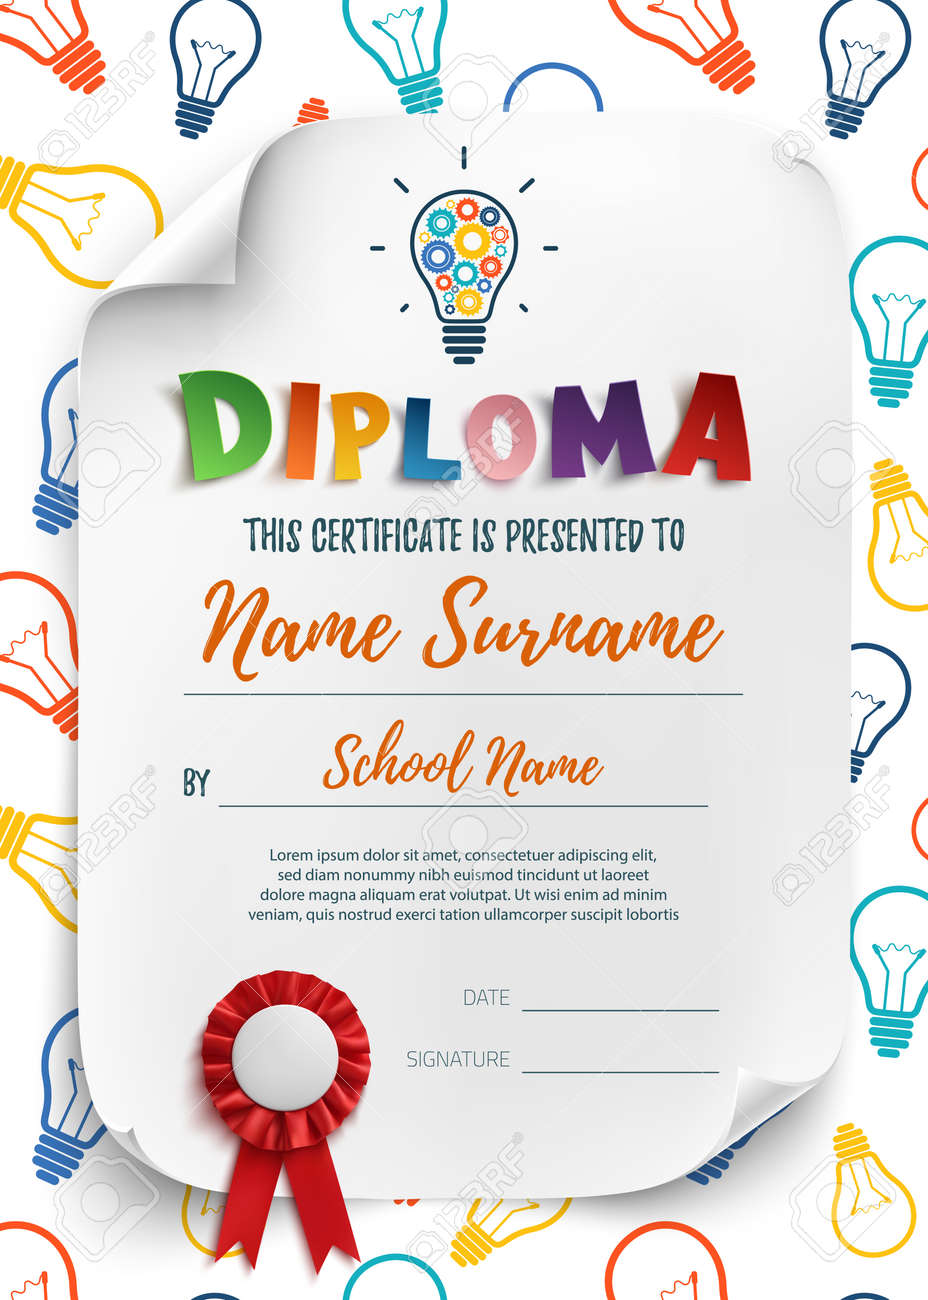 Diploma template for kids school preschool playschool diploma template for kids school preschool playschool certificate background wit colorful light yadclub Choice Image